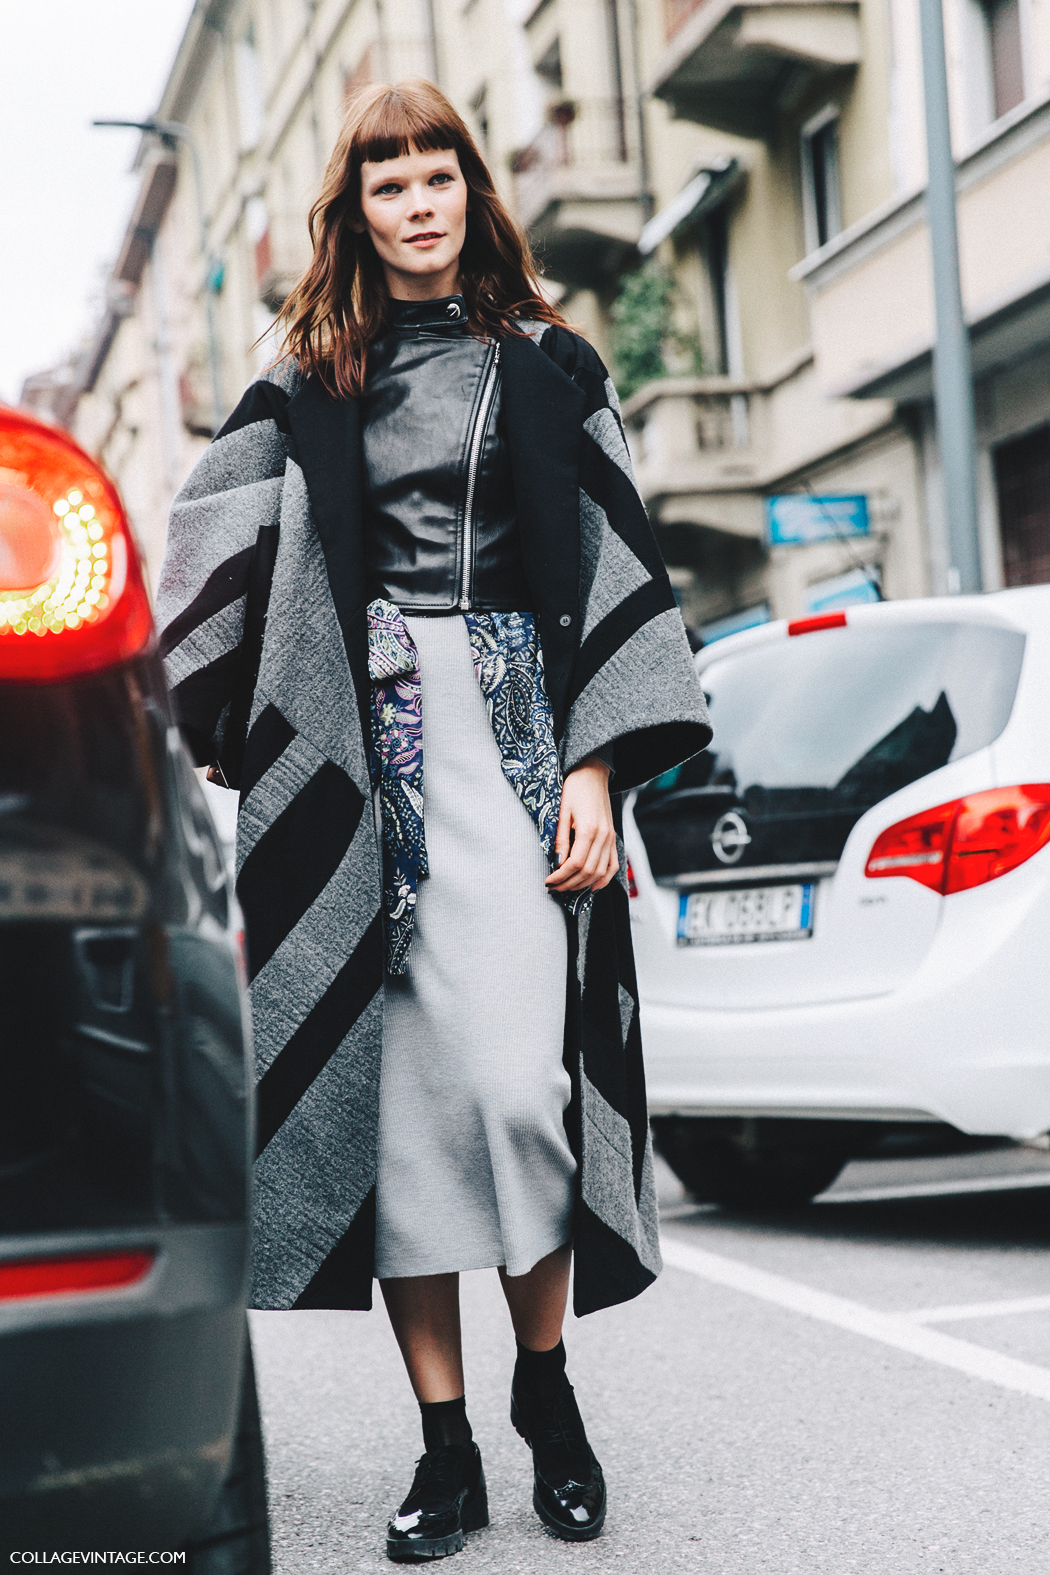 Milan_Fashion_Week_Fall_16-MFW-Street_Style-Collage_Vintage-Model-Midi_Skirt-Layers-Biker_Jacket-